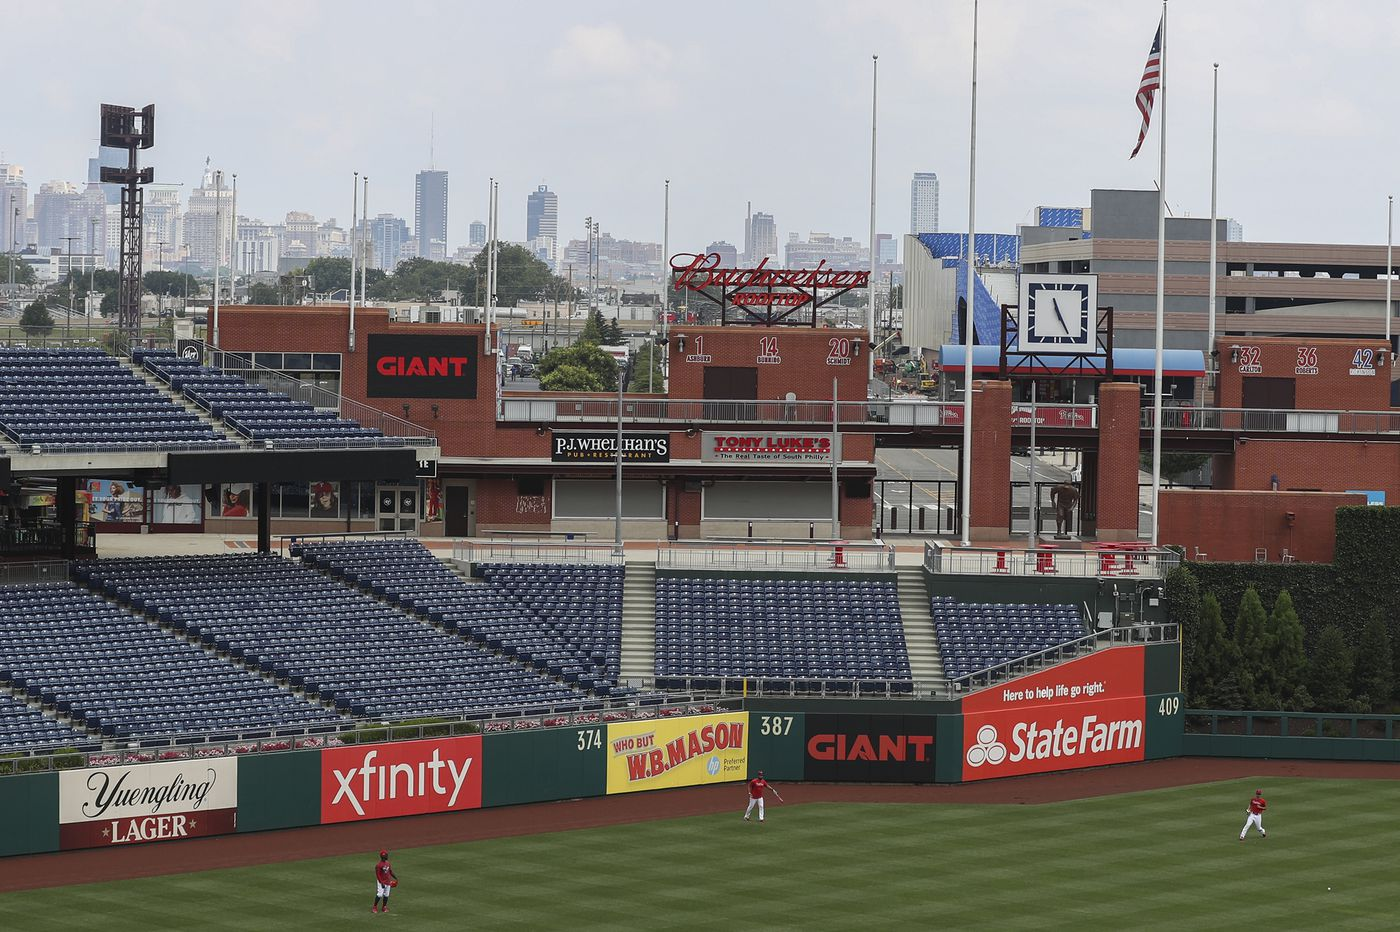 MLB aiming for full 2021 season with release of schedule; Phillies open at home April 1